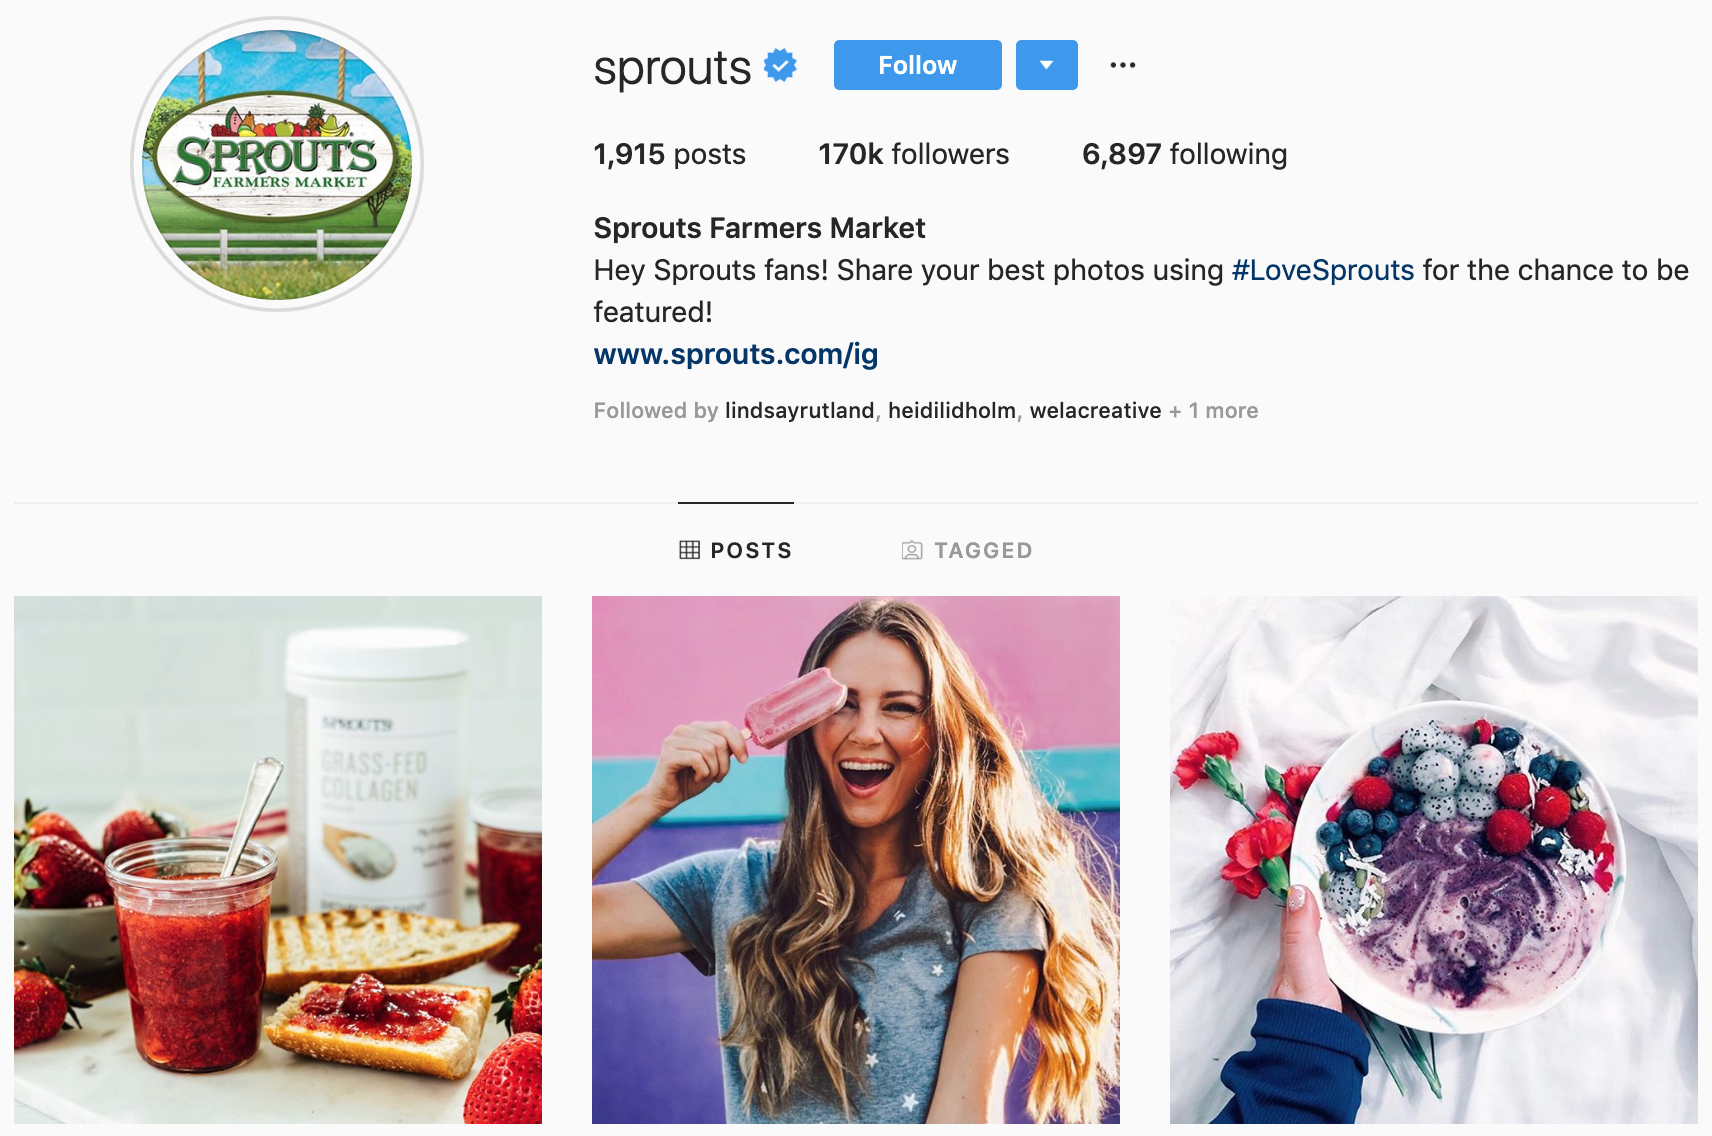 Sprouts on Instagram - Best Brands to Follow